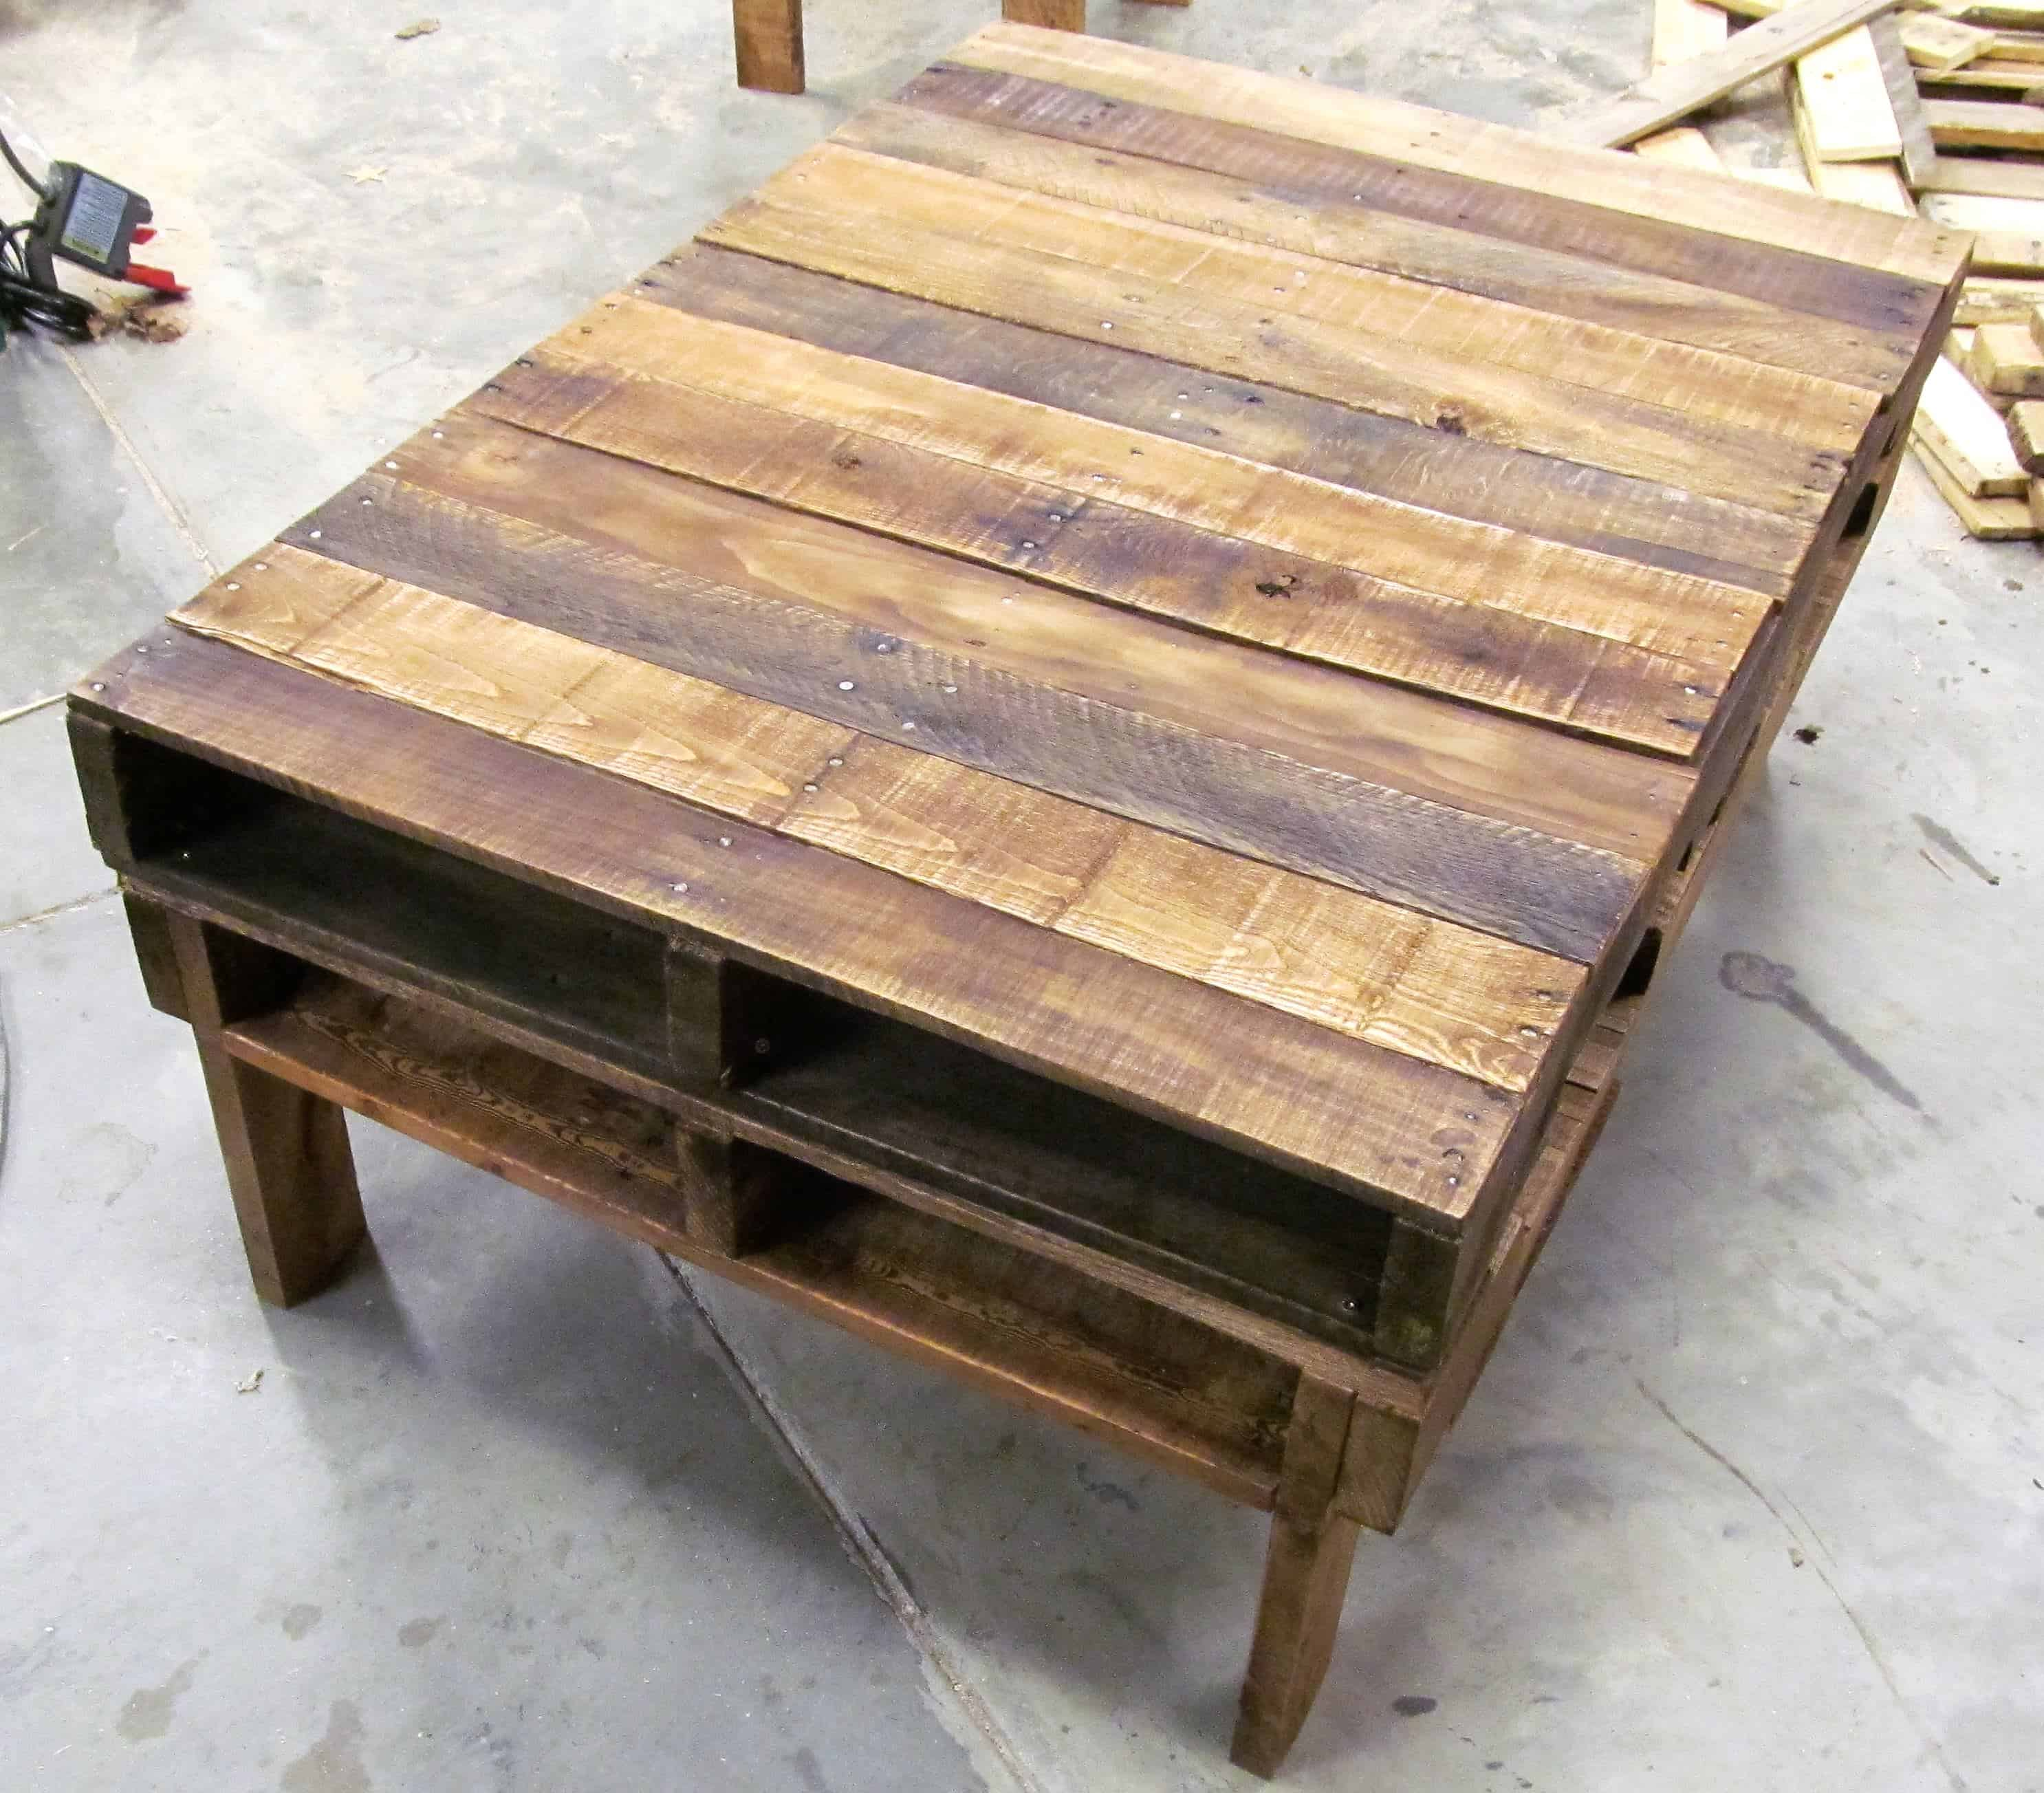 Permalink to woodworking building a coffee table